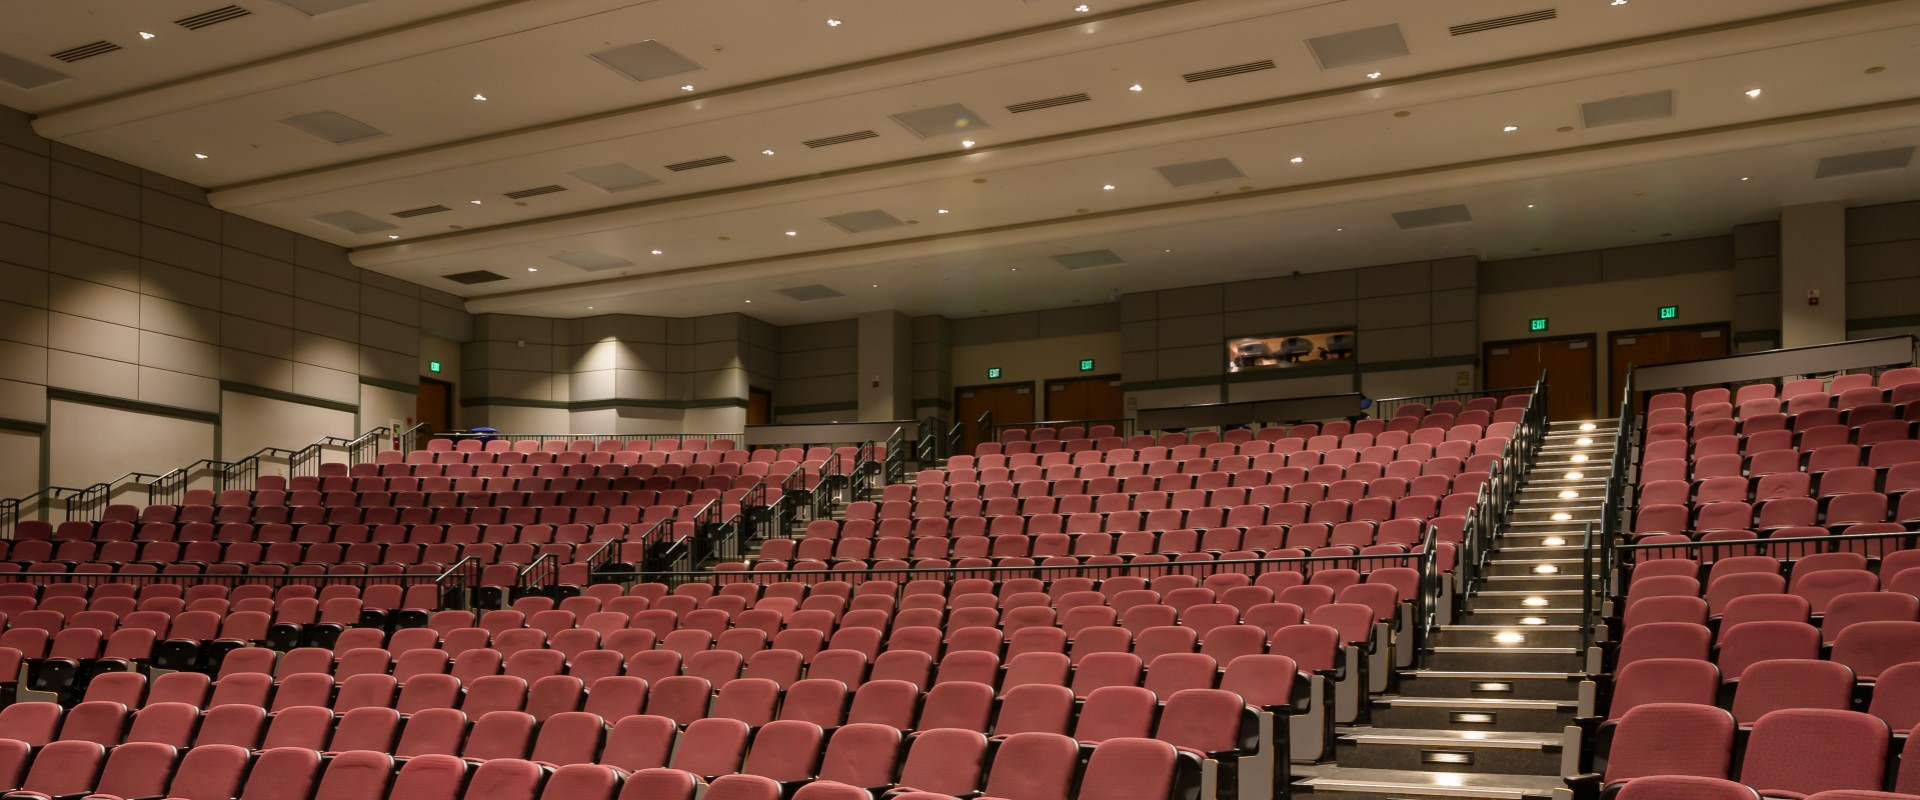 Penn State lecture hall